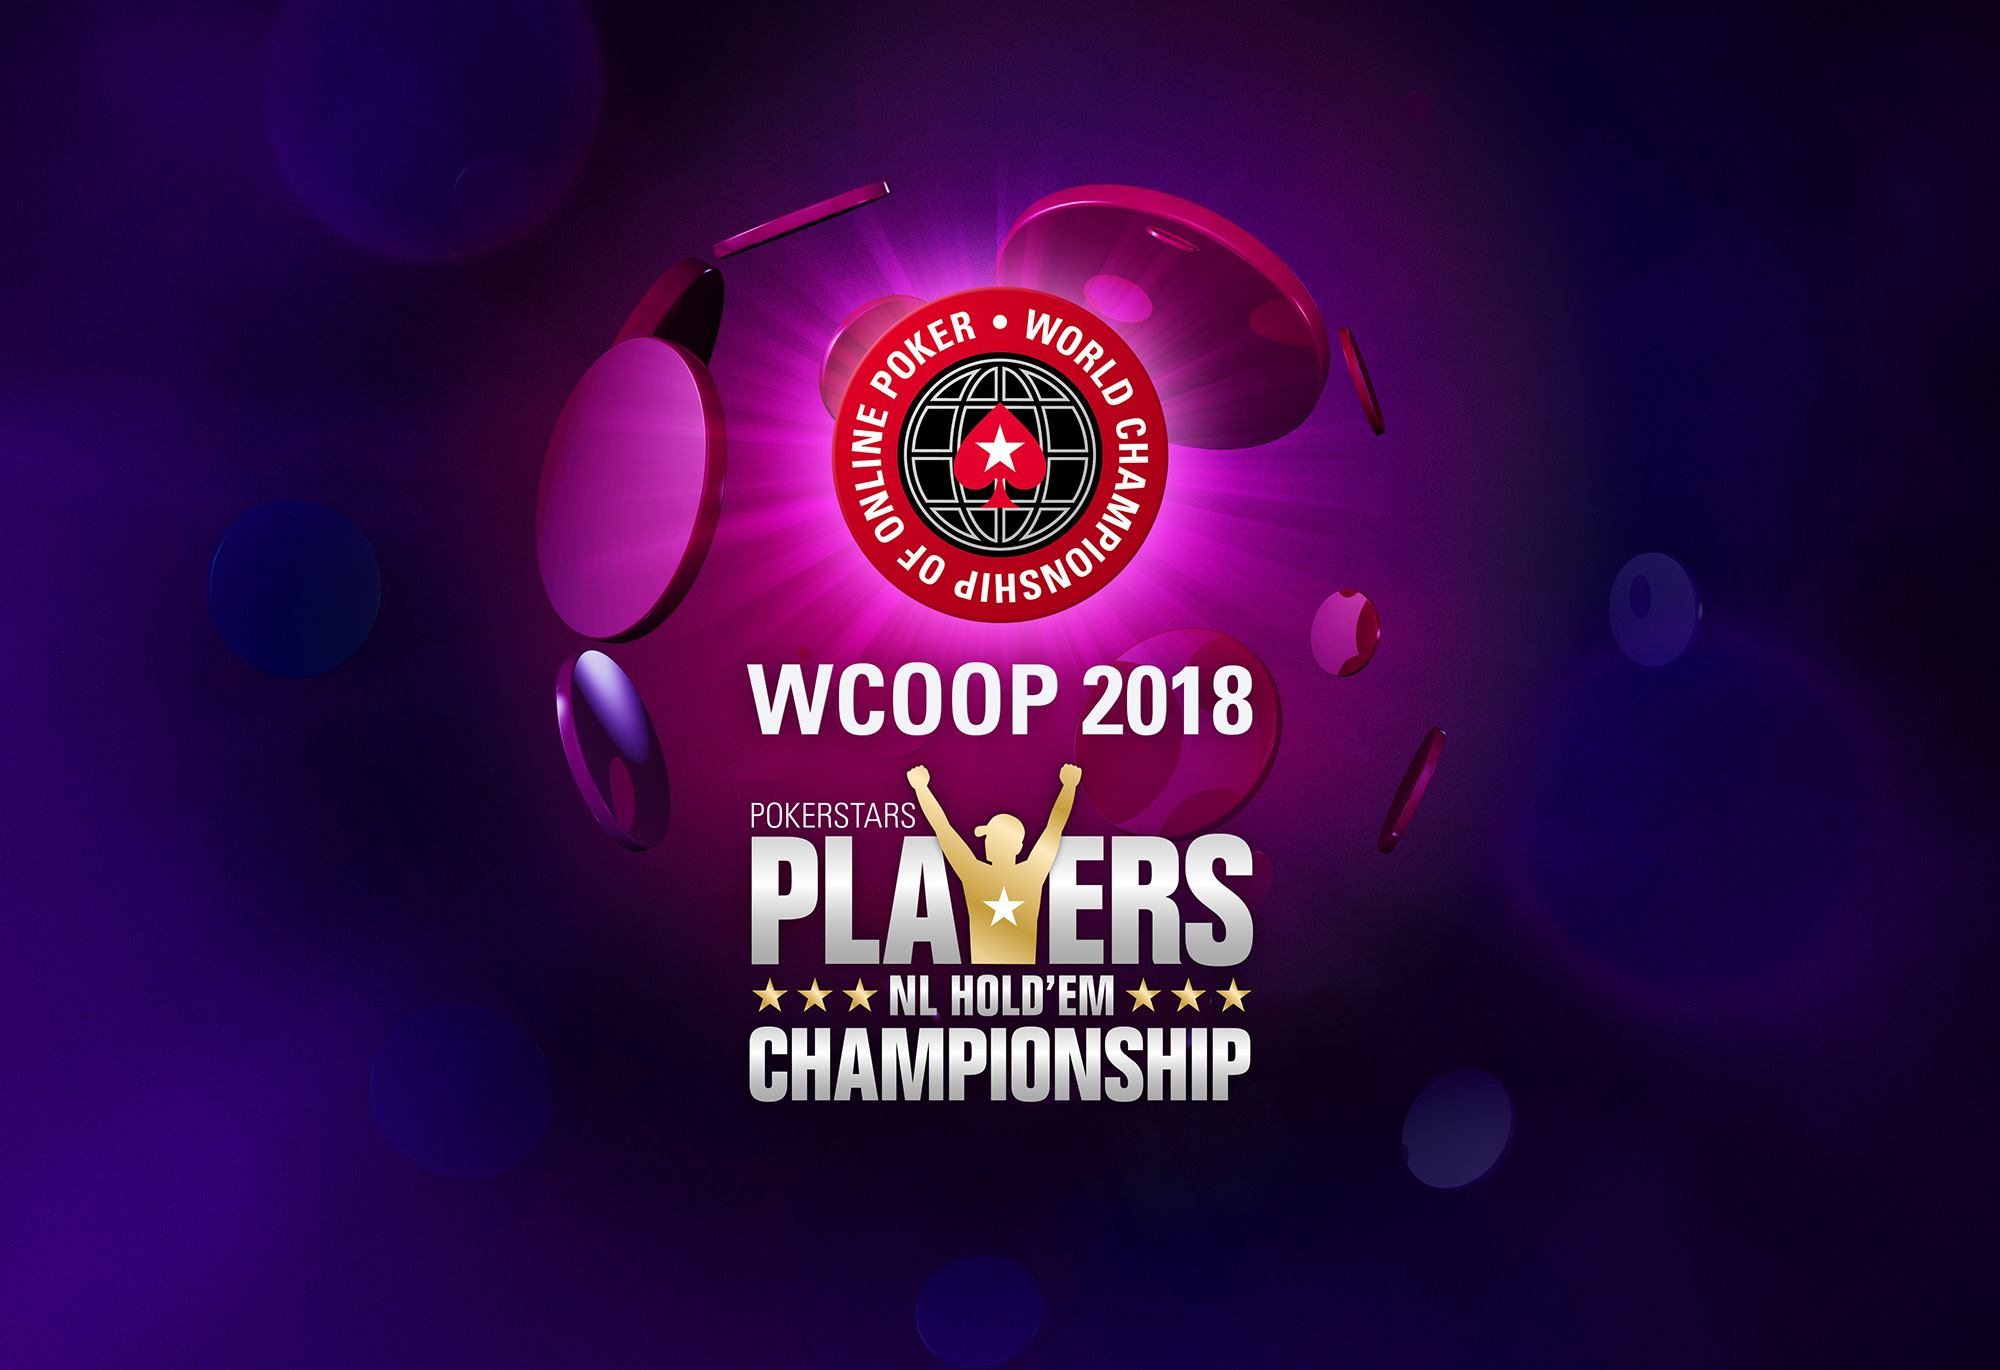 With over 60 events and a total of 182 tournaments, PokerStars' marquee event of the year—the World Championship of Online Poker (WCOOP)—return…